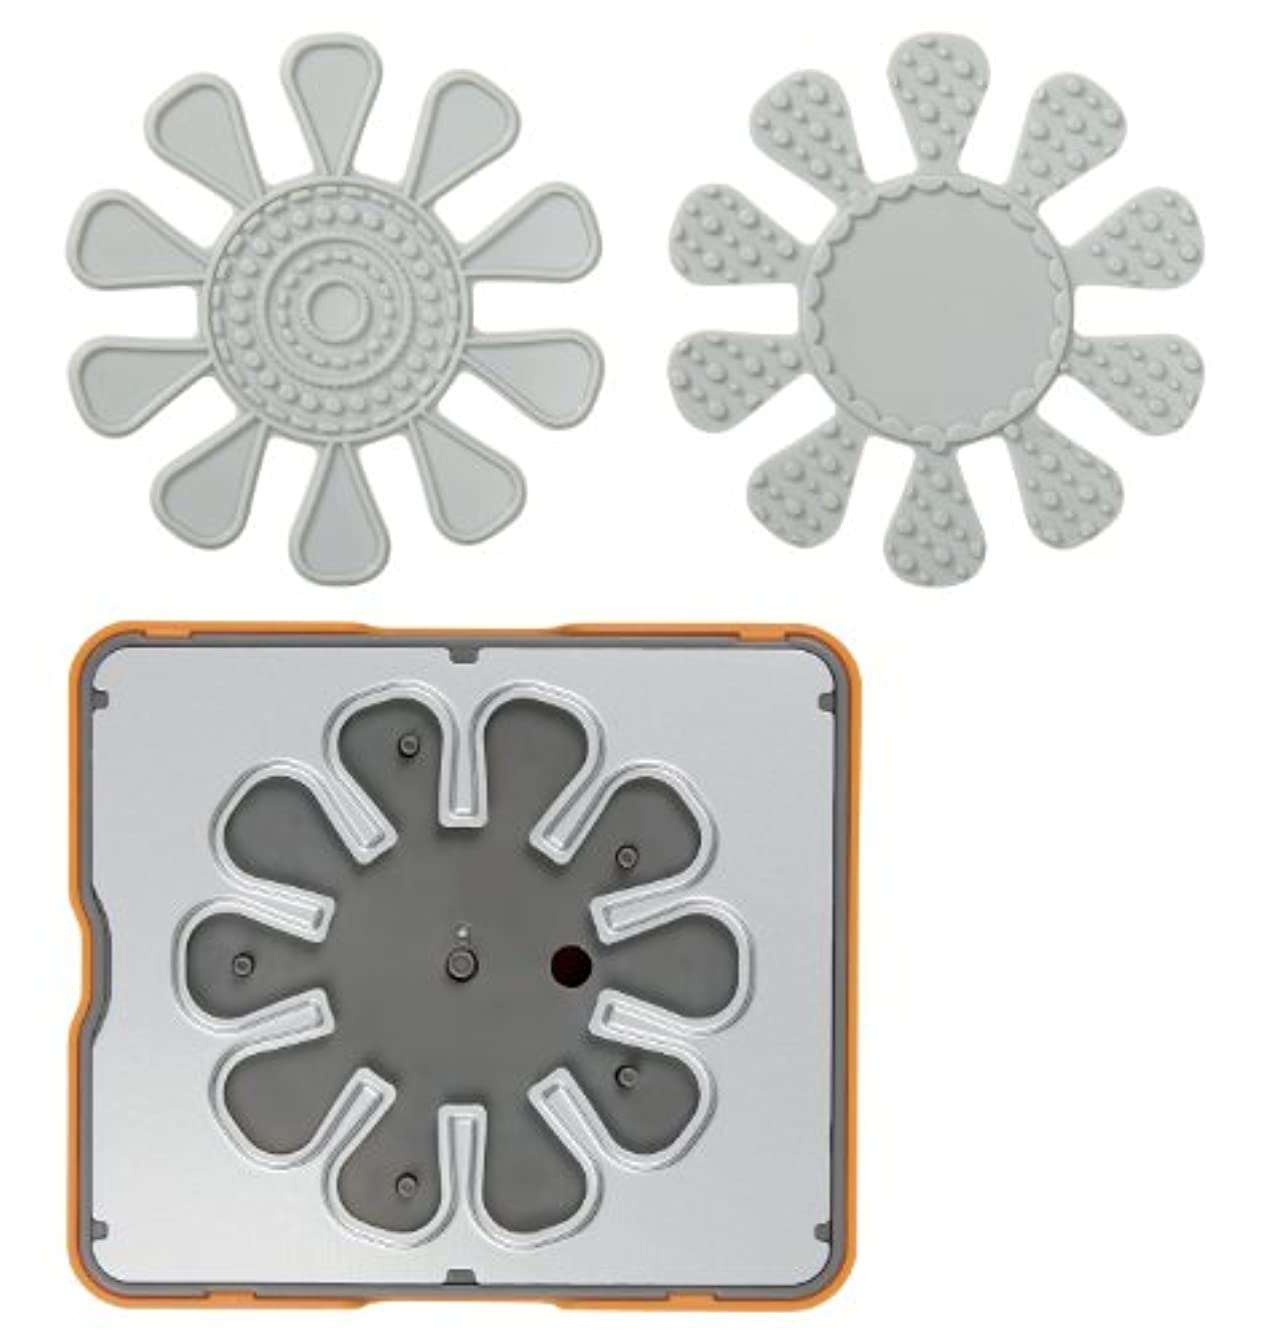 Fiskars 101130-1001 Flower Design Set, Medium